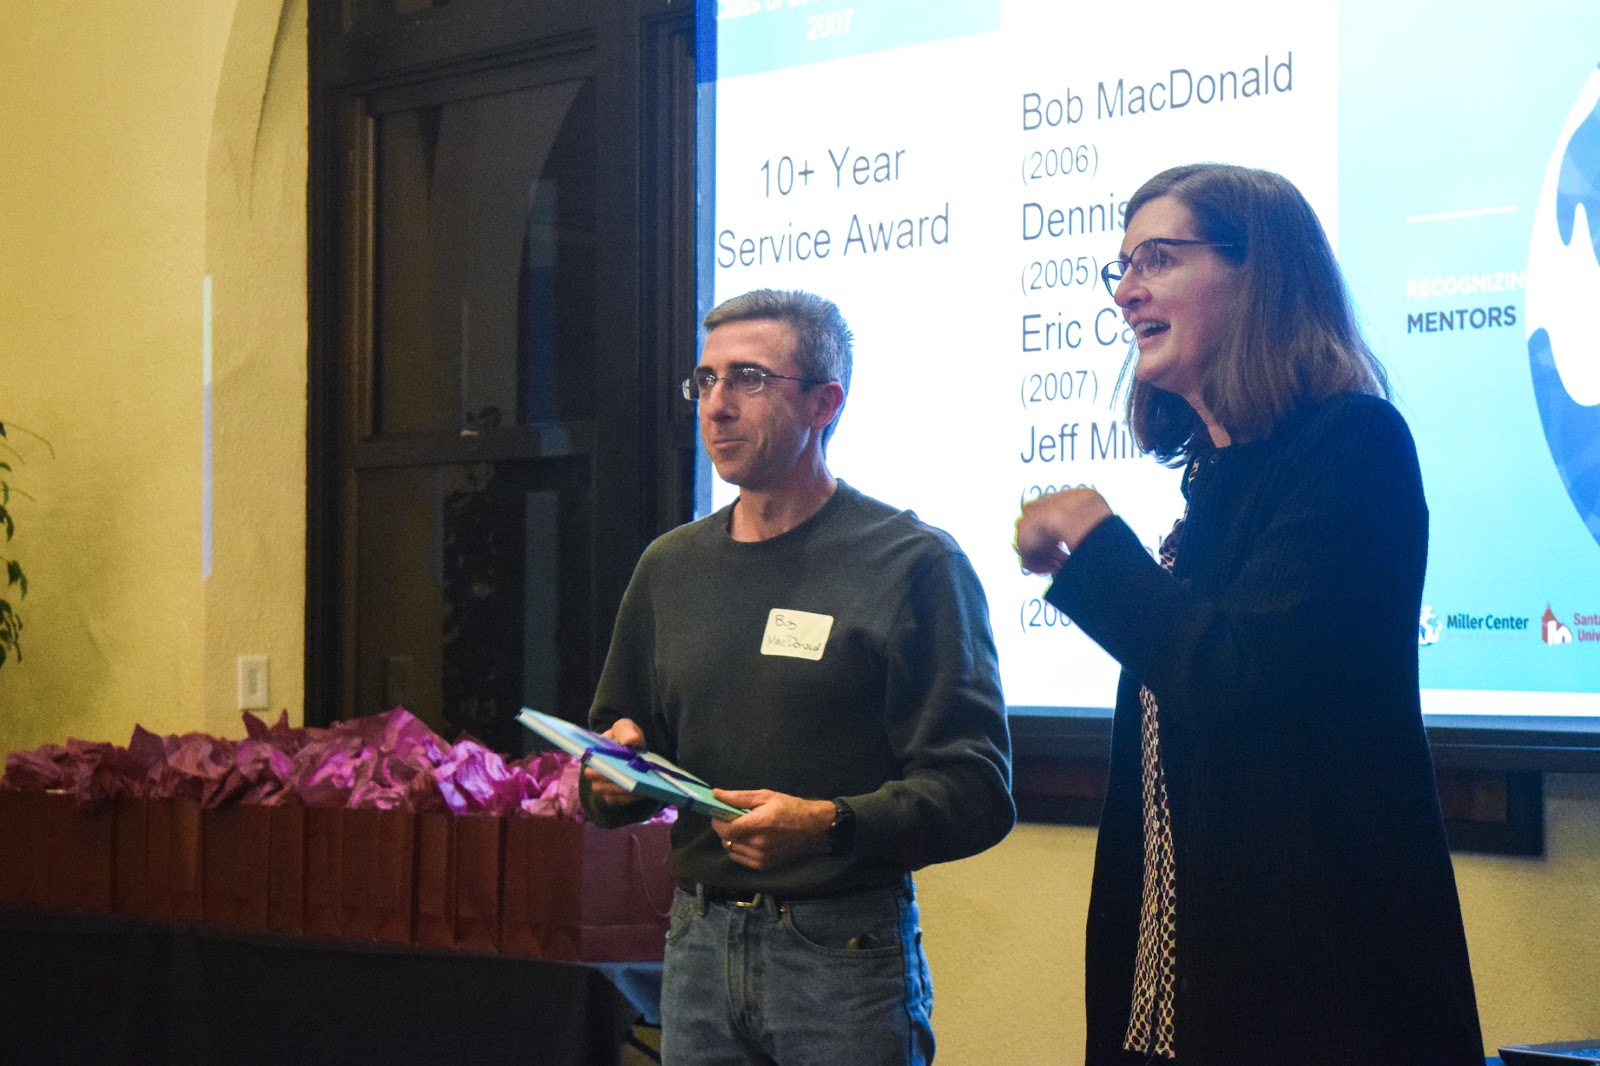 Bob MacDonald pictured receiving his gift, recognizing 10+ years of service as a mentor to Miller Center social entrepreneurs.